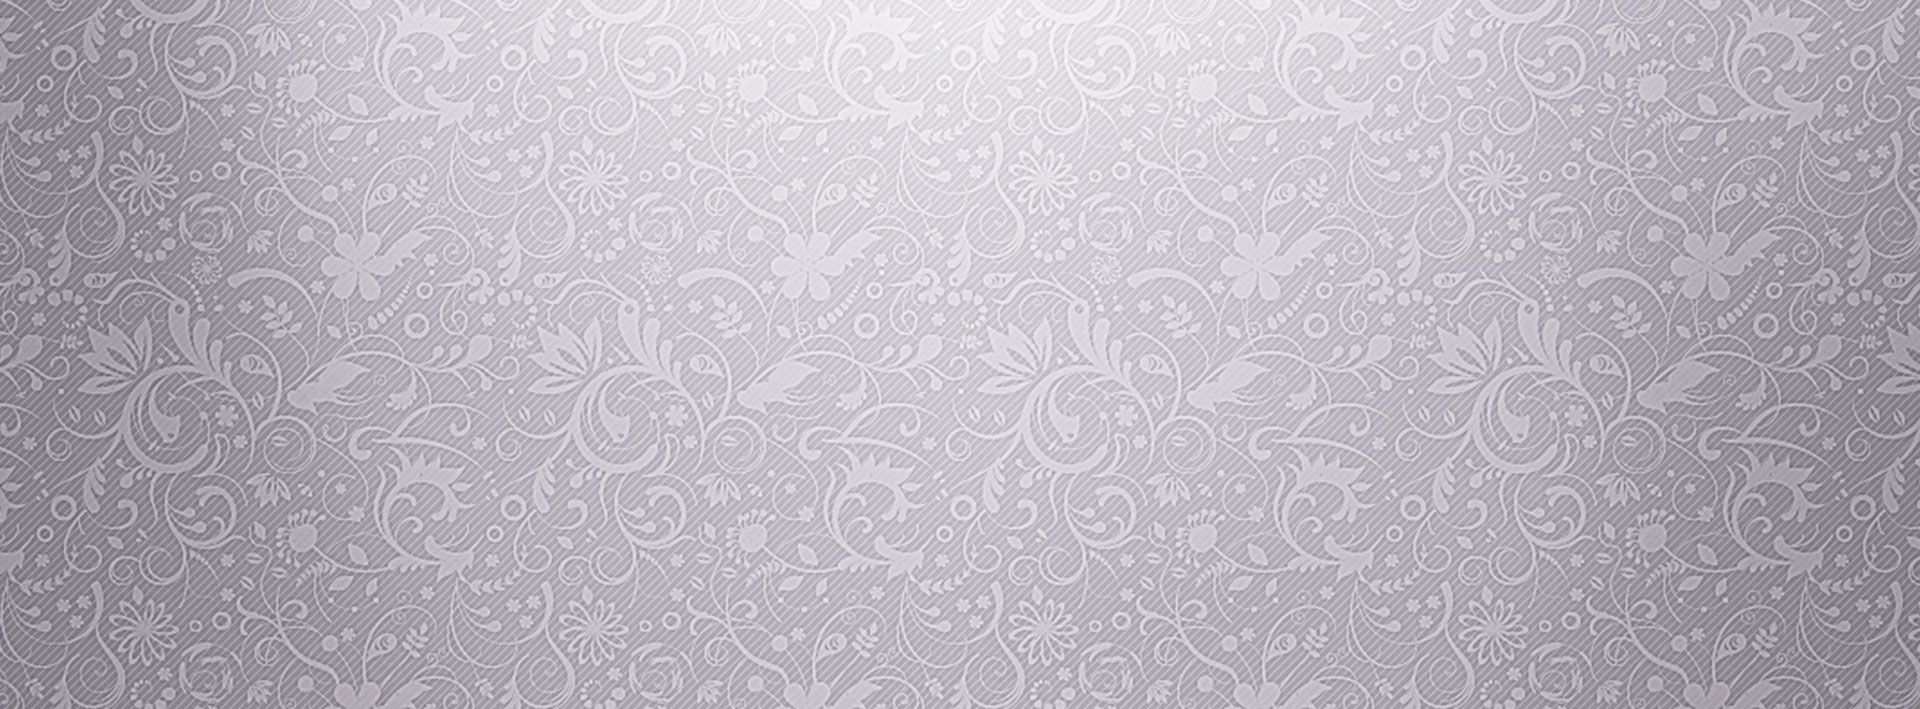 Gray Shadow Background Papel De Parede Floral Panos De Fundo